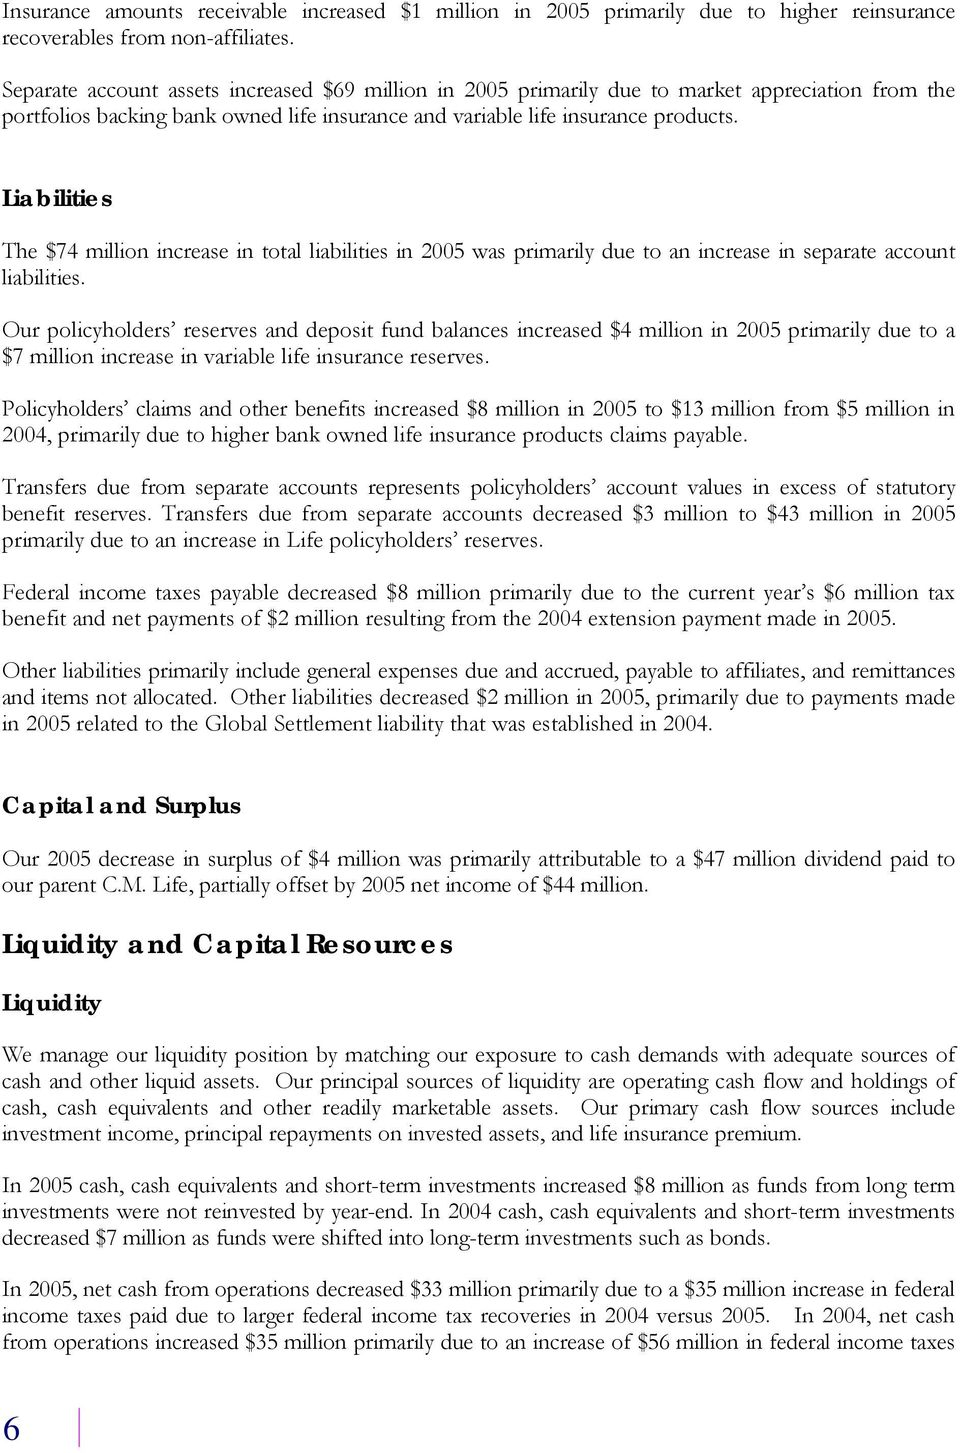 Liabilities The $74 million increase in total liabilities in 2005 was primarily due to an increase in separate account liabilities.